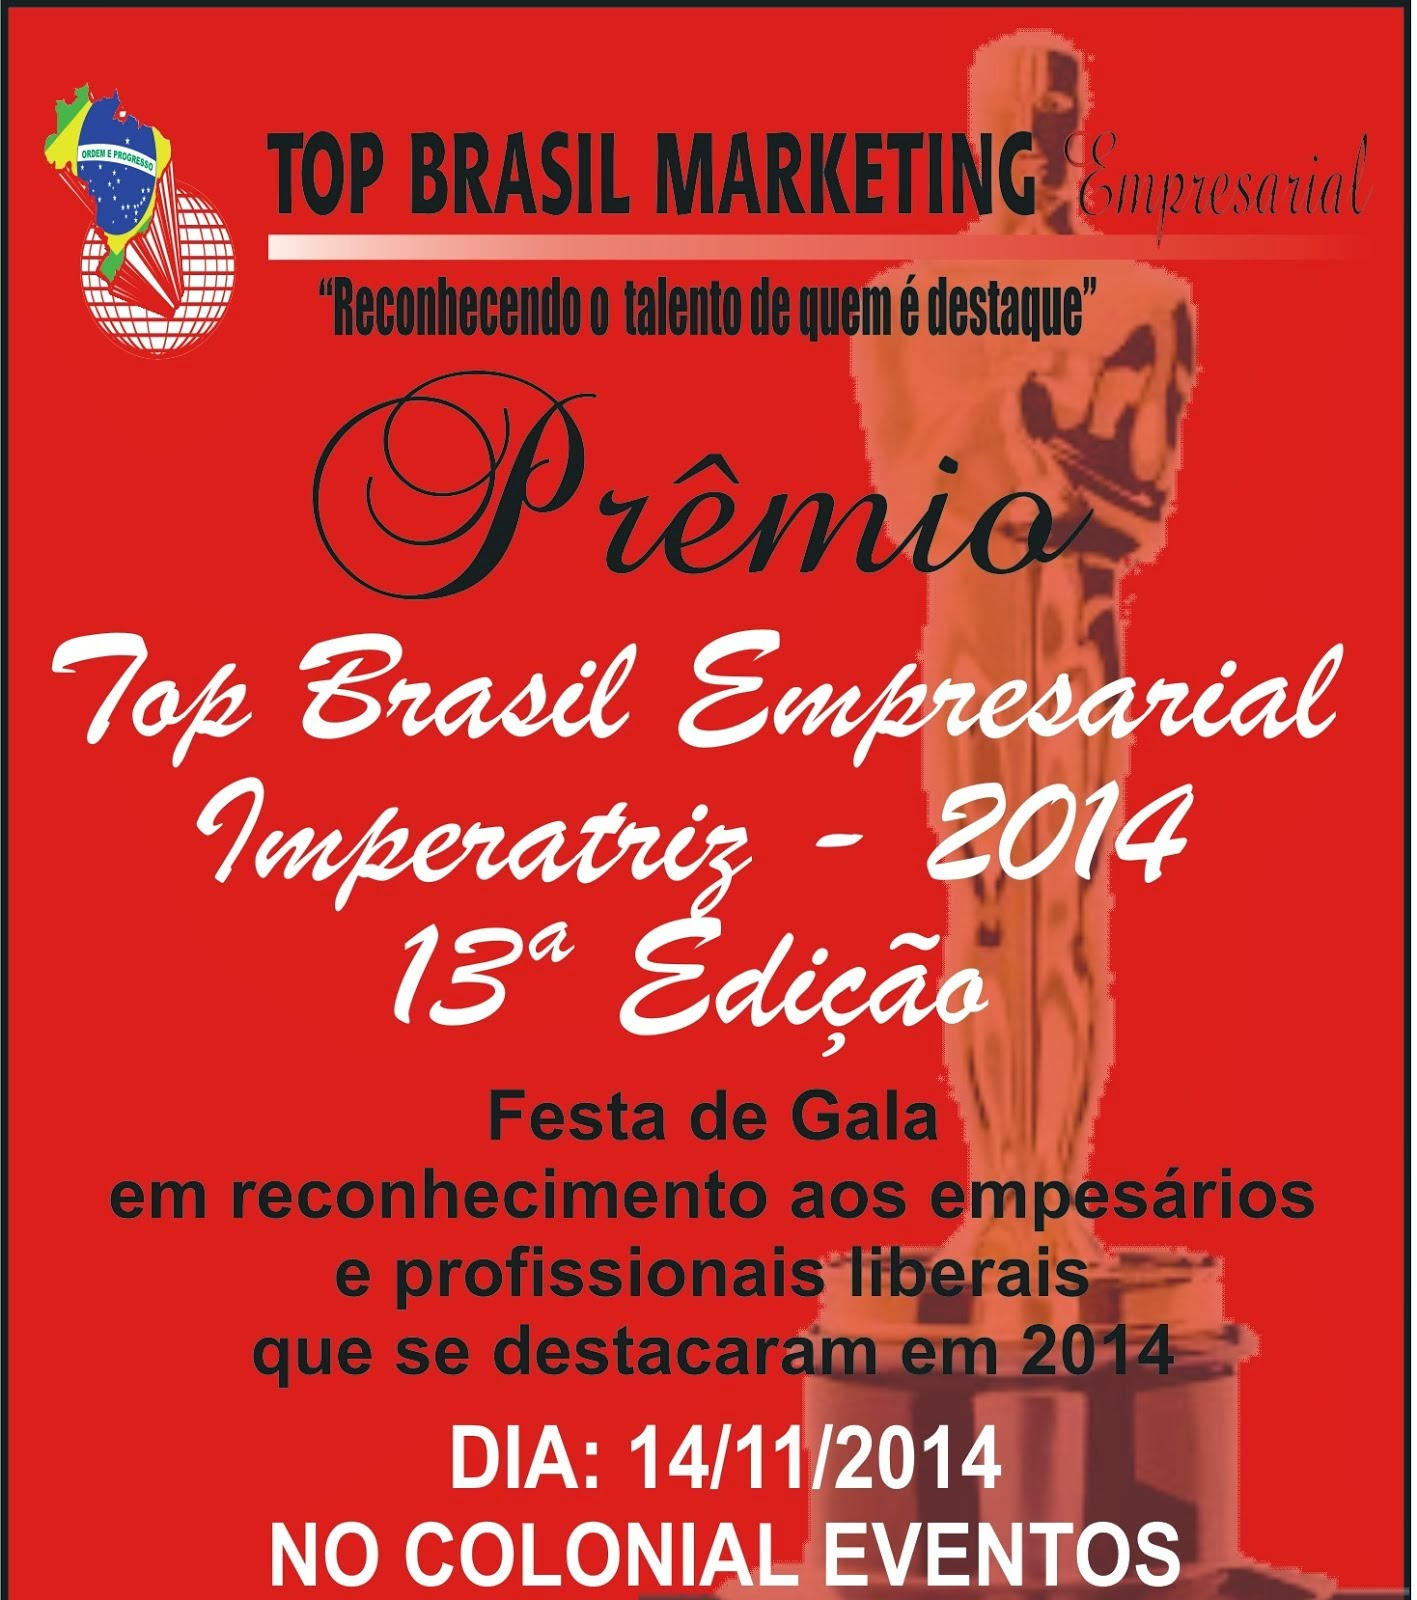 TOP BRASIL MARKETING EMPRESARIAL